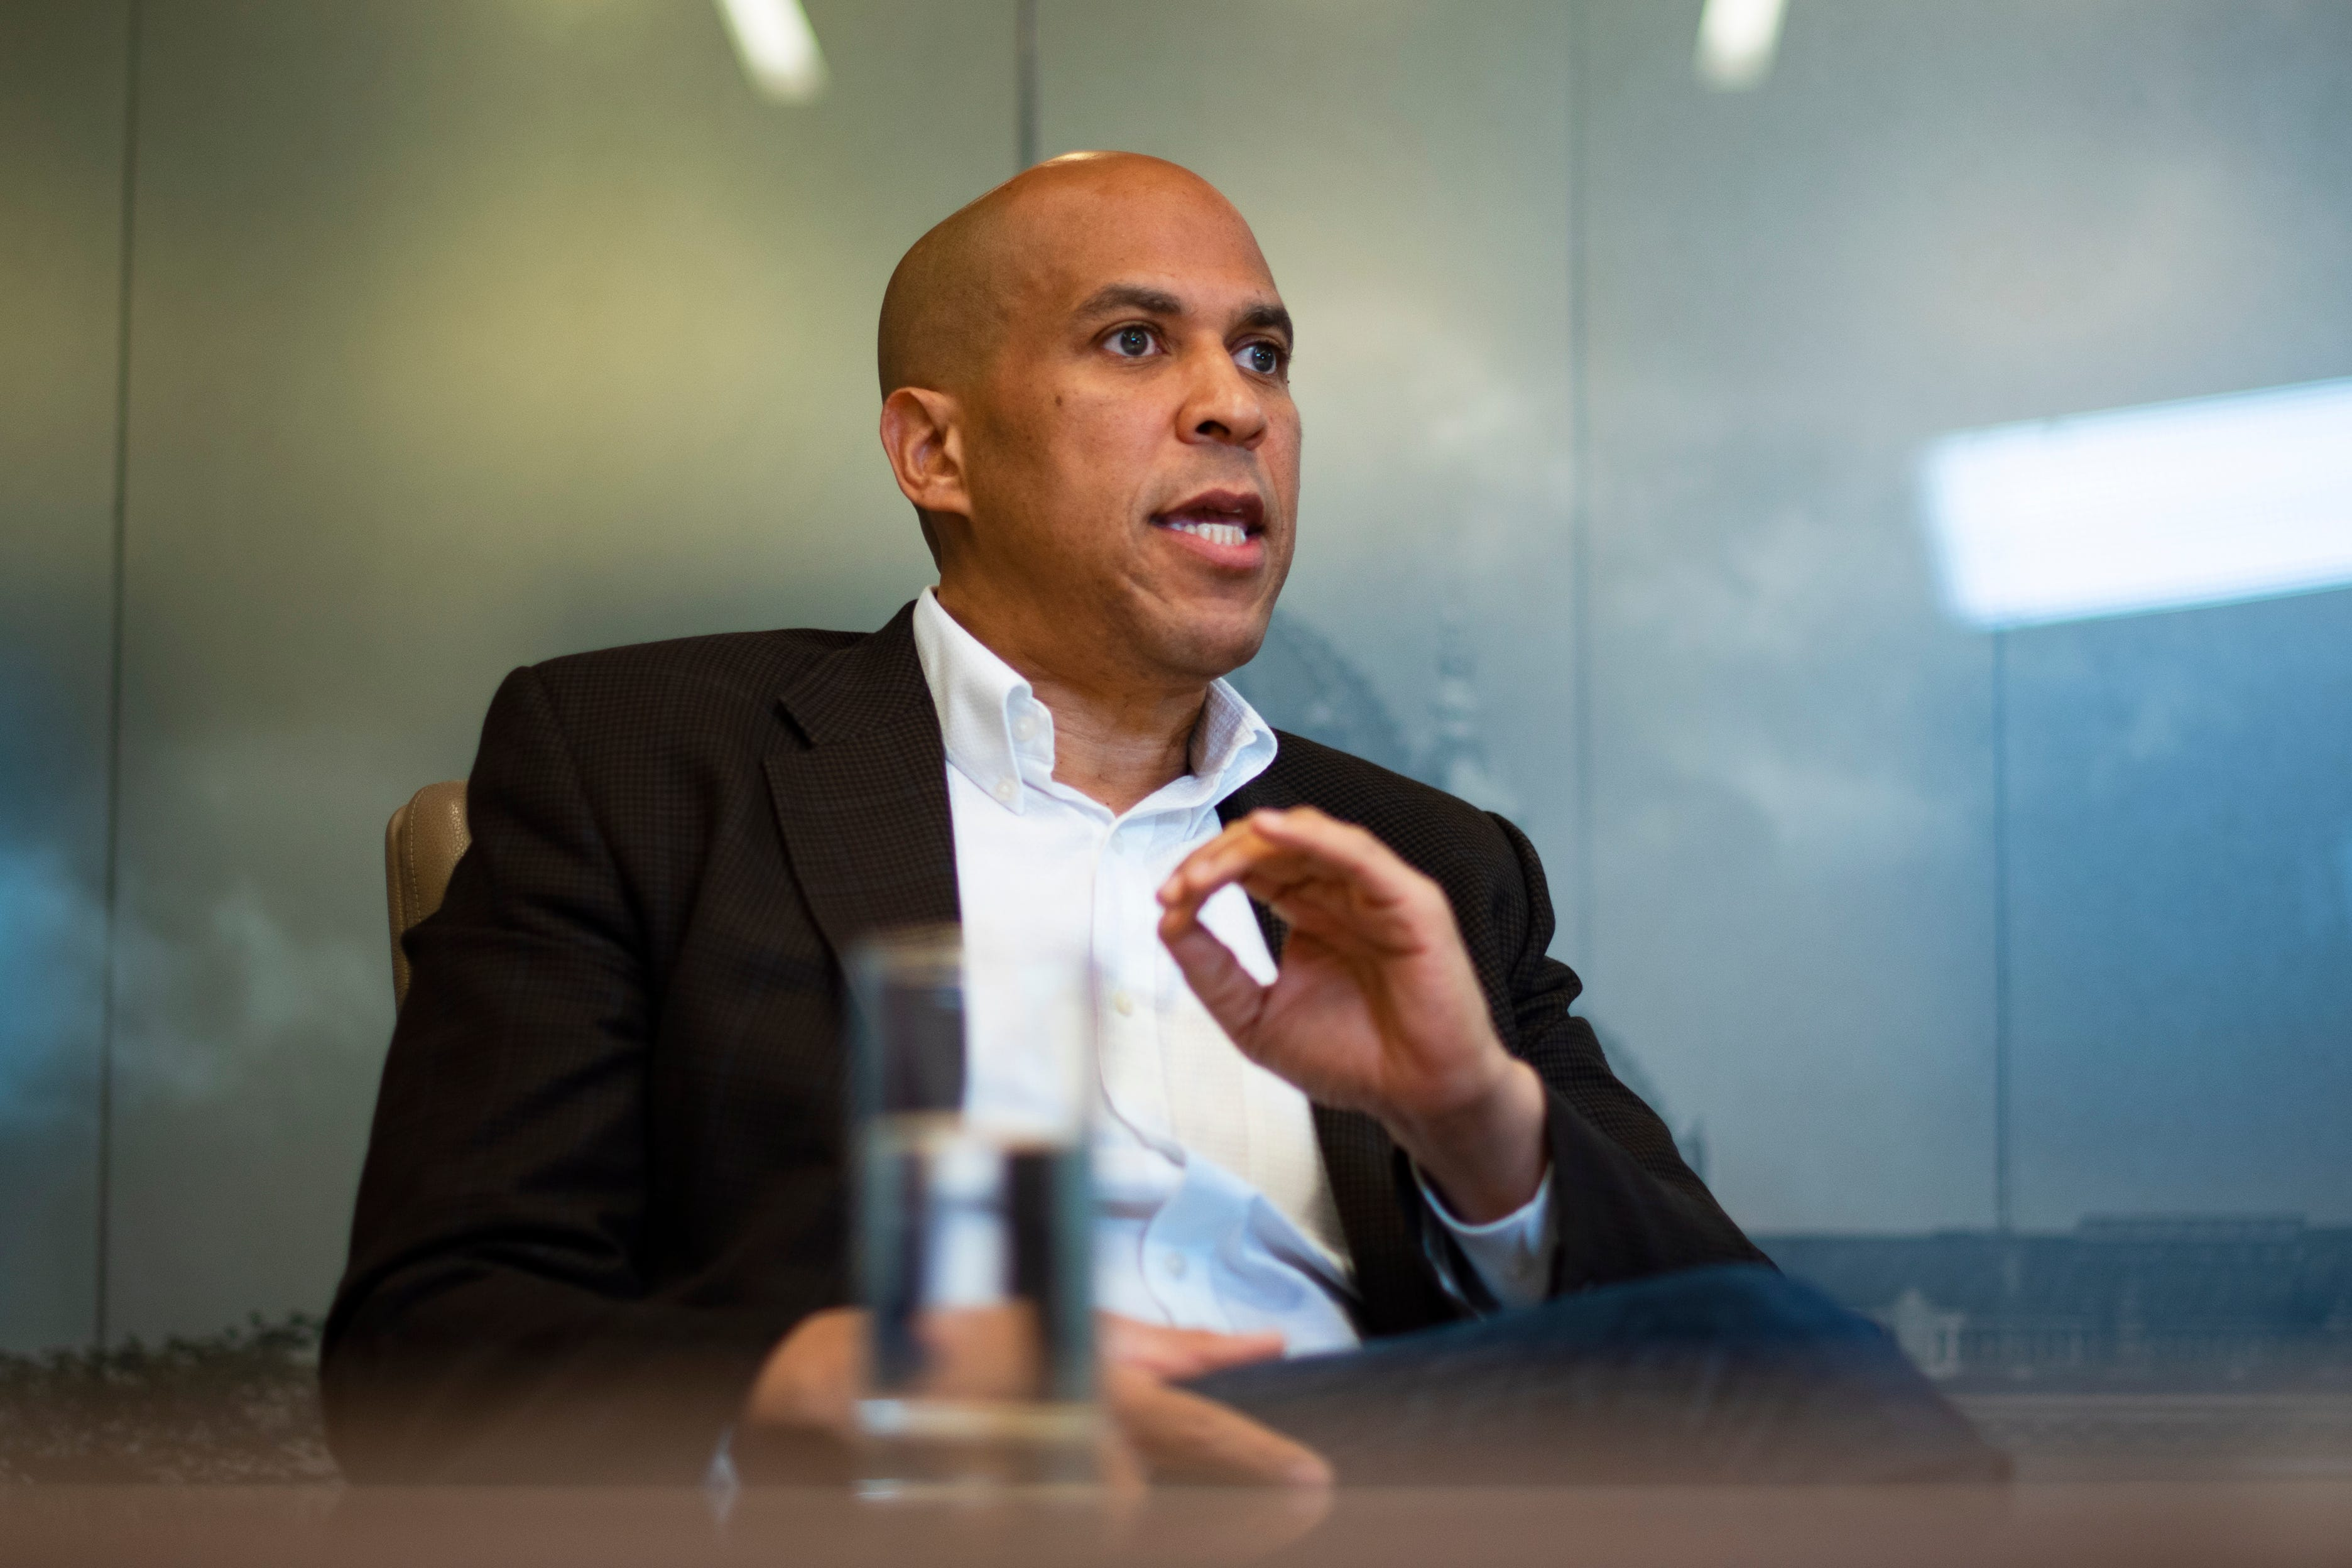 Cory Booker meets with the Register's editorial board